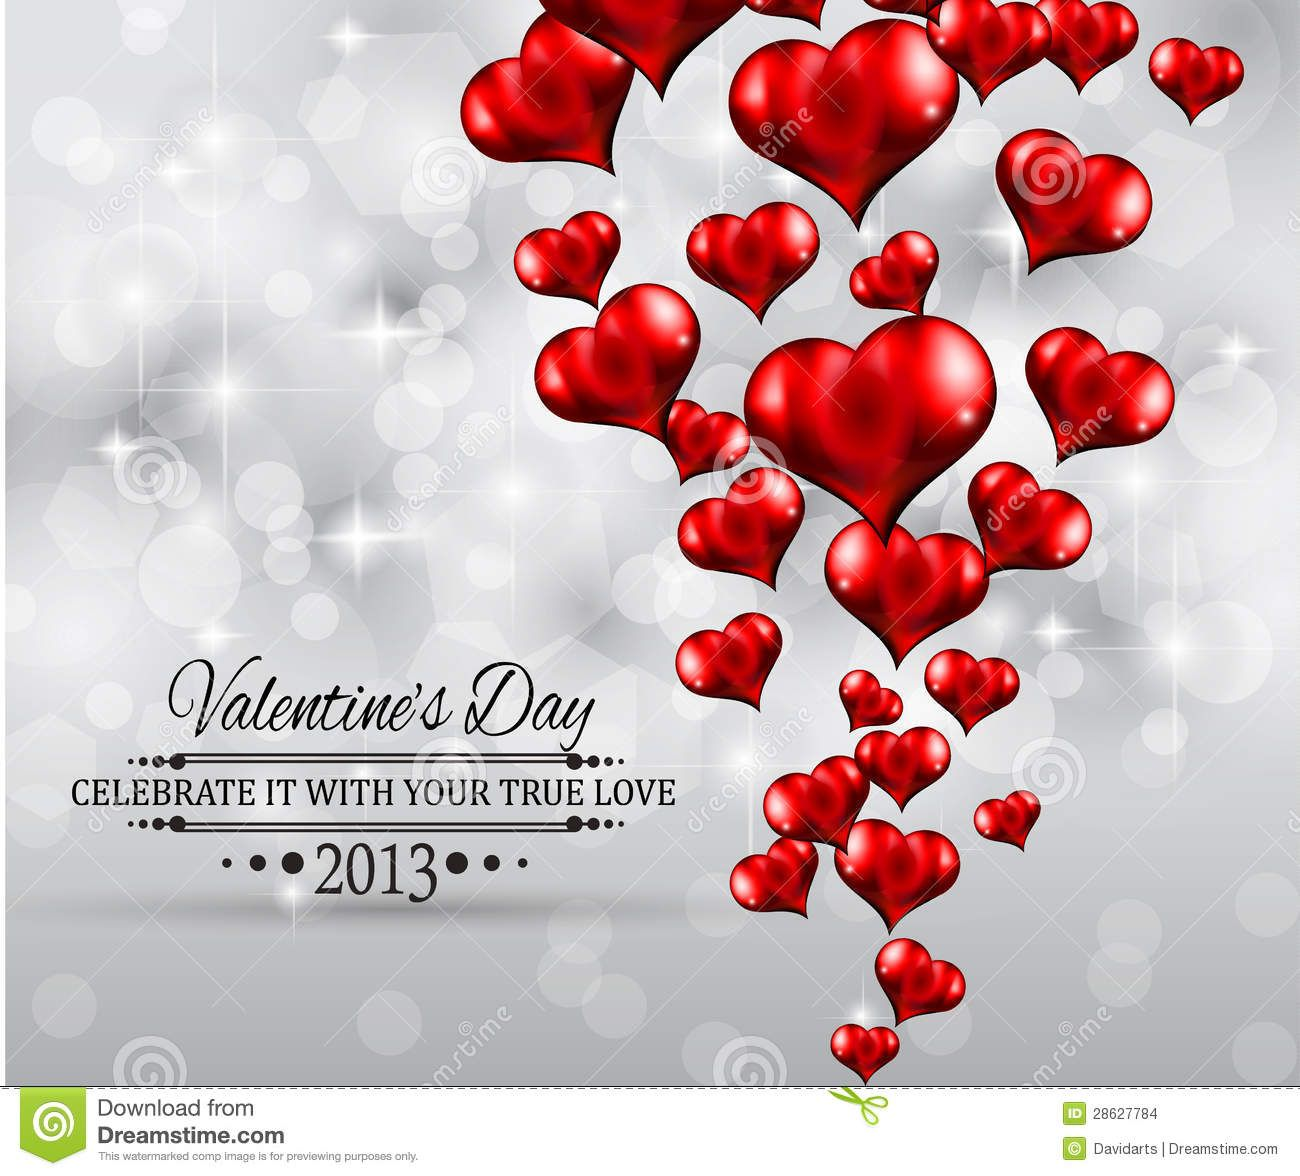 17 Best images about Valentine's Day on Pinterest | Sale banner ...